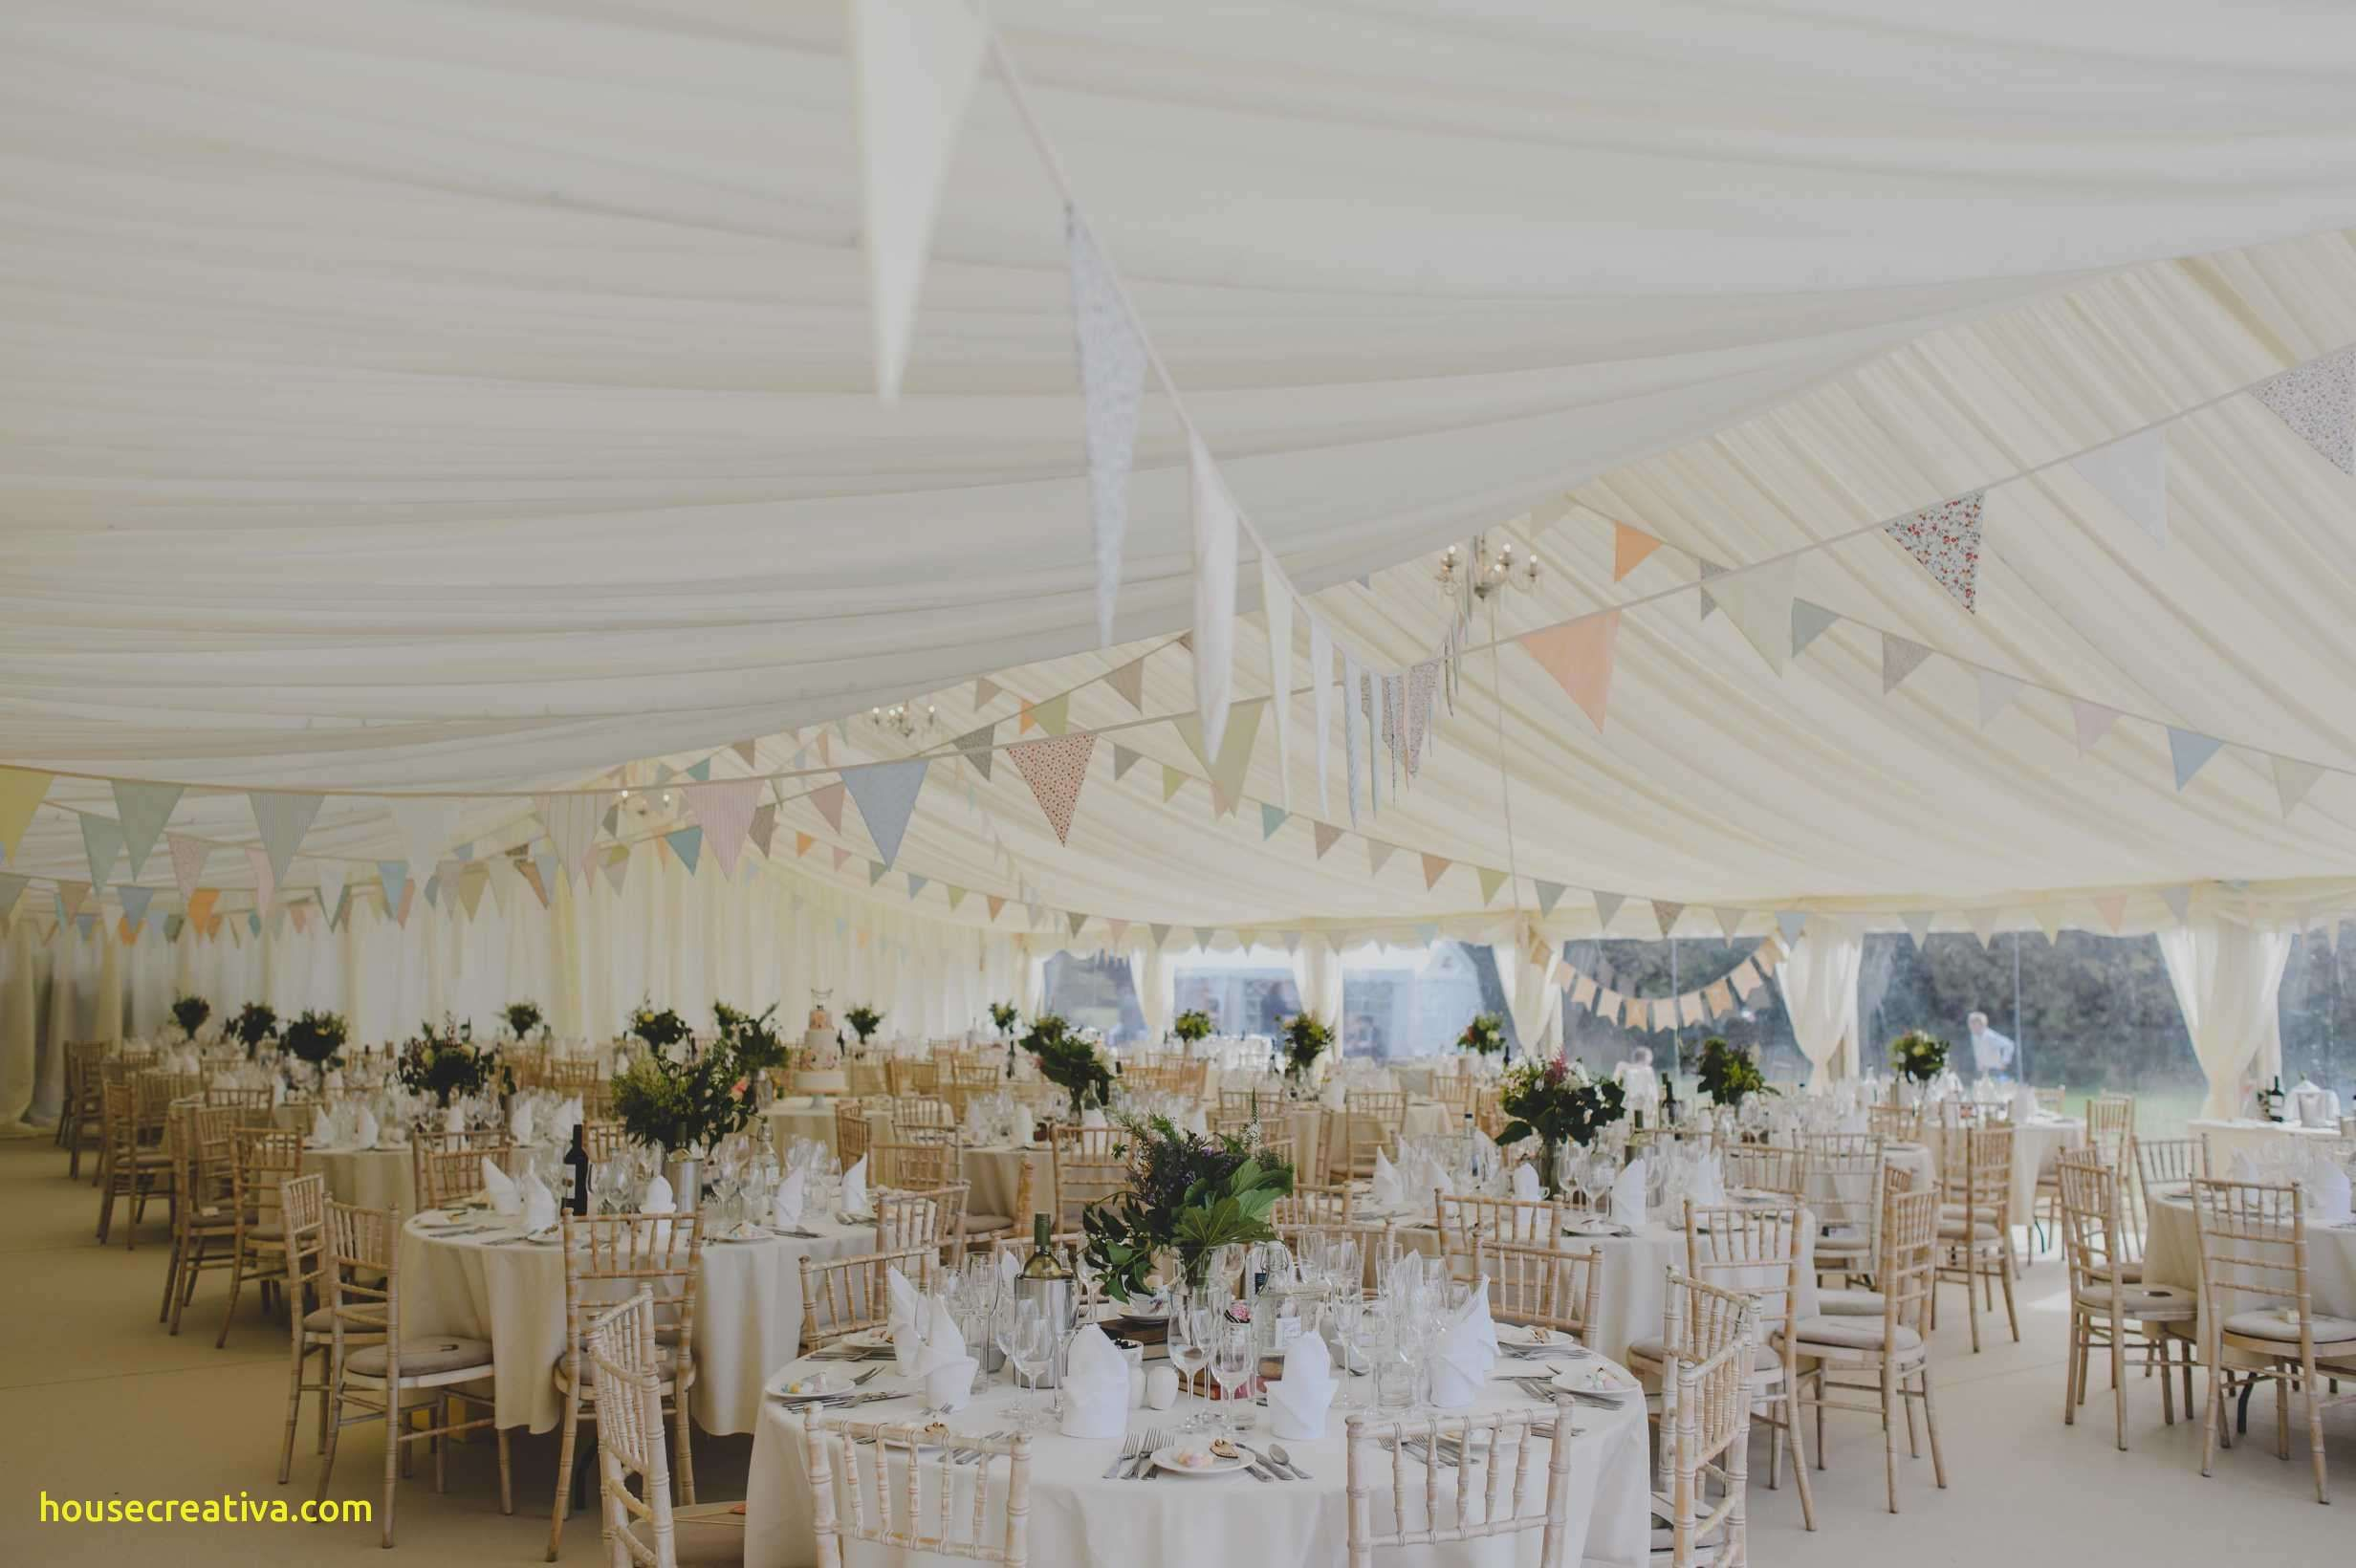 Lovely Canopy Decoration For Wedding Homedecoration Homedecorations Homedecorationide Wedding Tent Decorations Wedding Rentals Decor